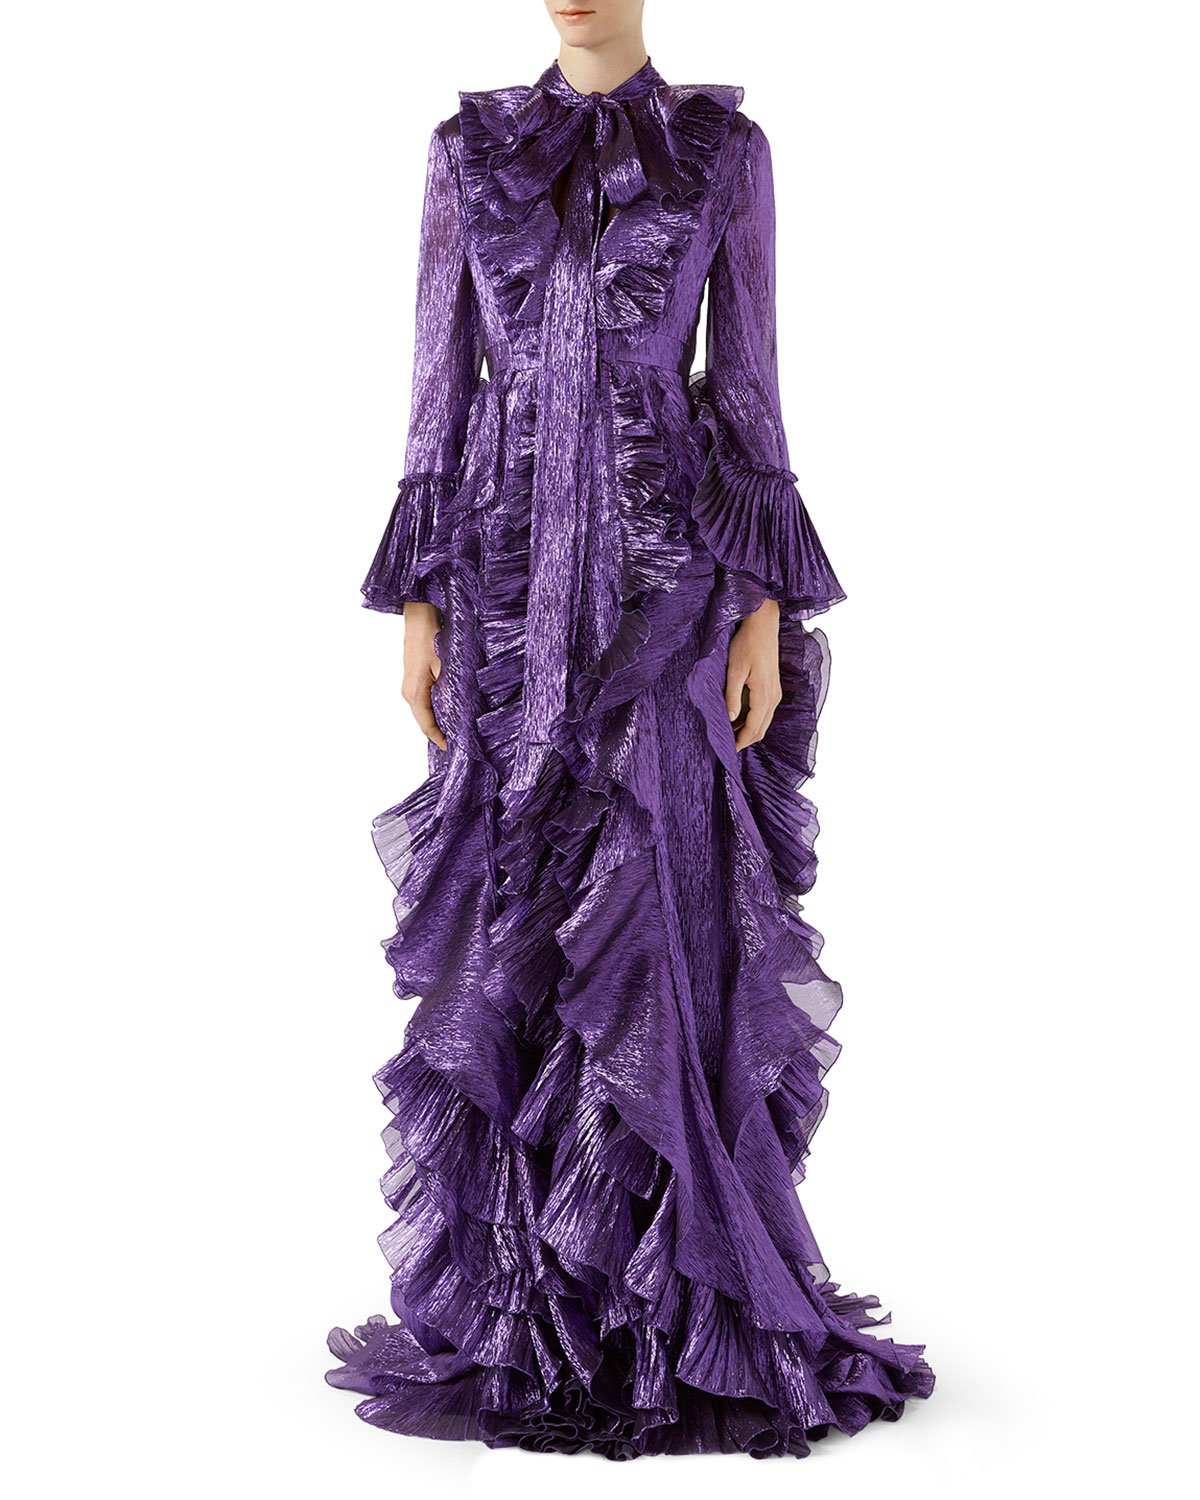 87ce0070c Iridescent Organdy Gown with Ruffles